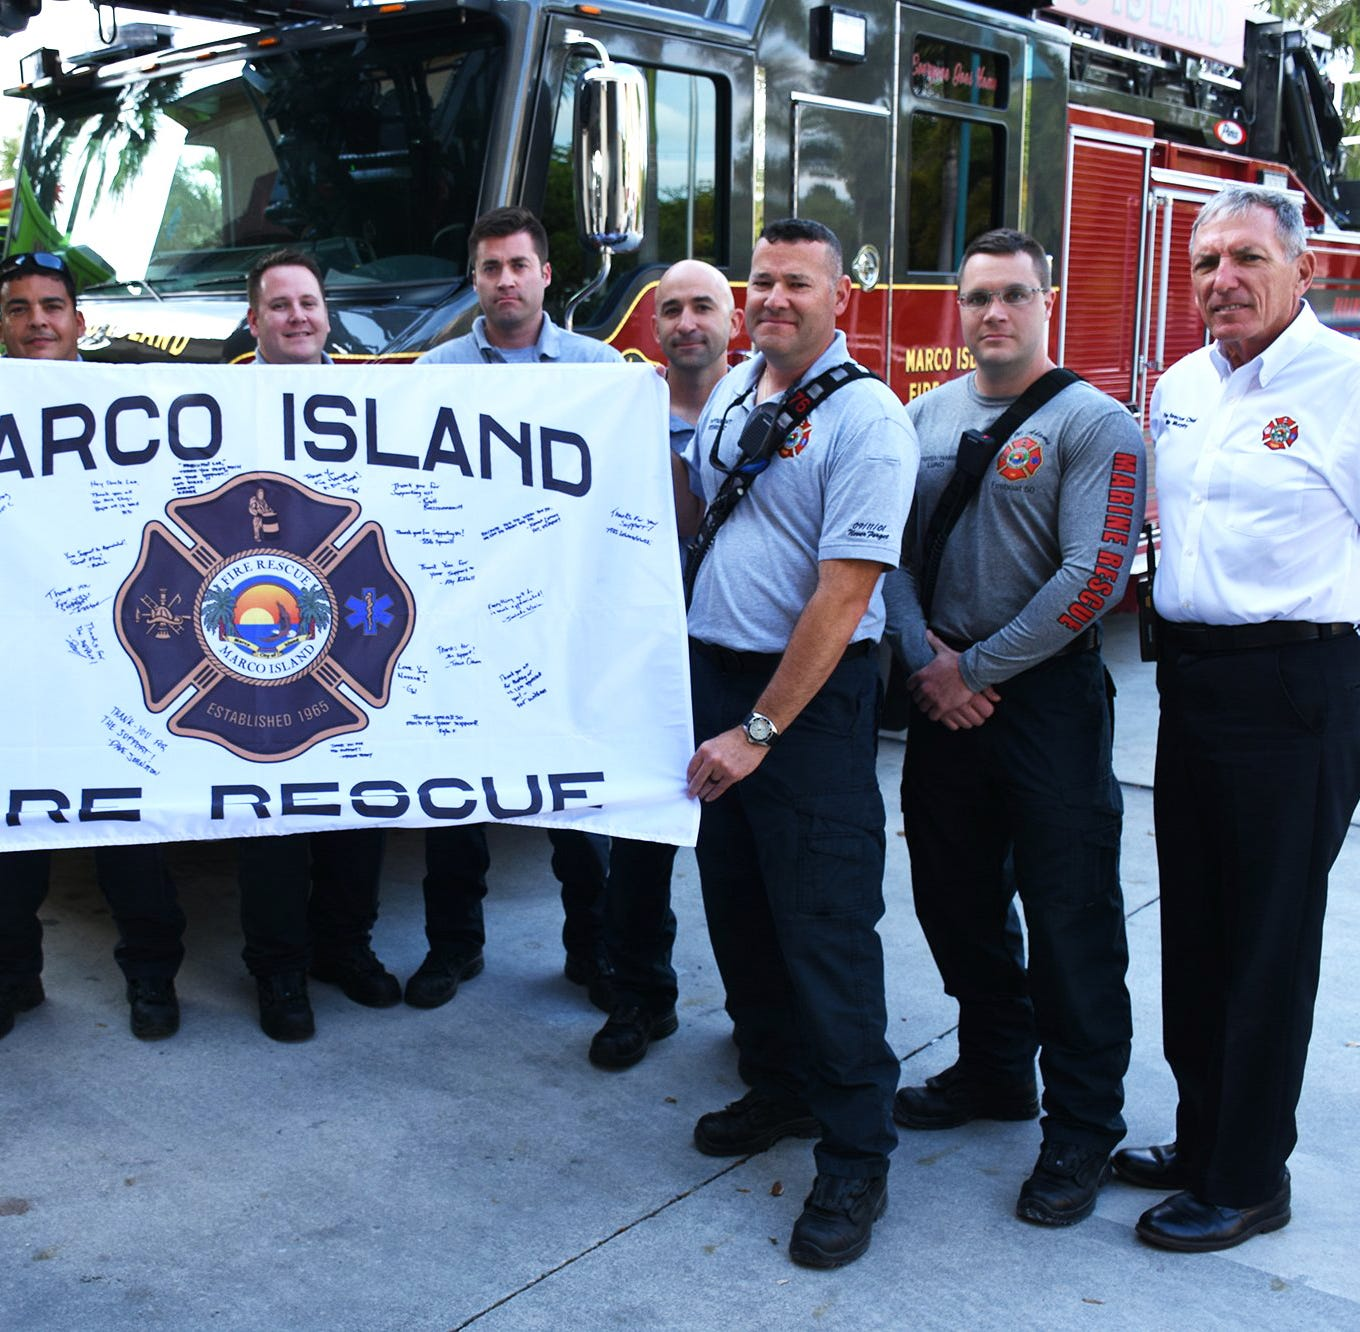 Soldiers' gift to Marco's firefighters